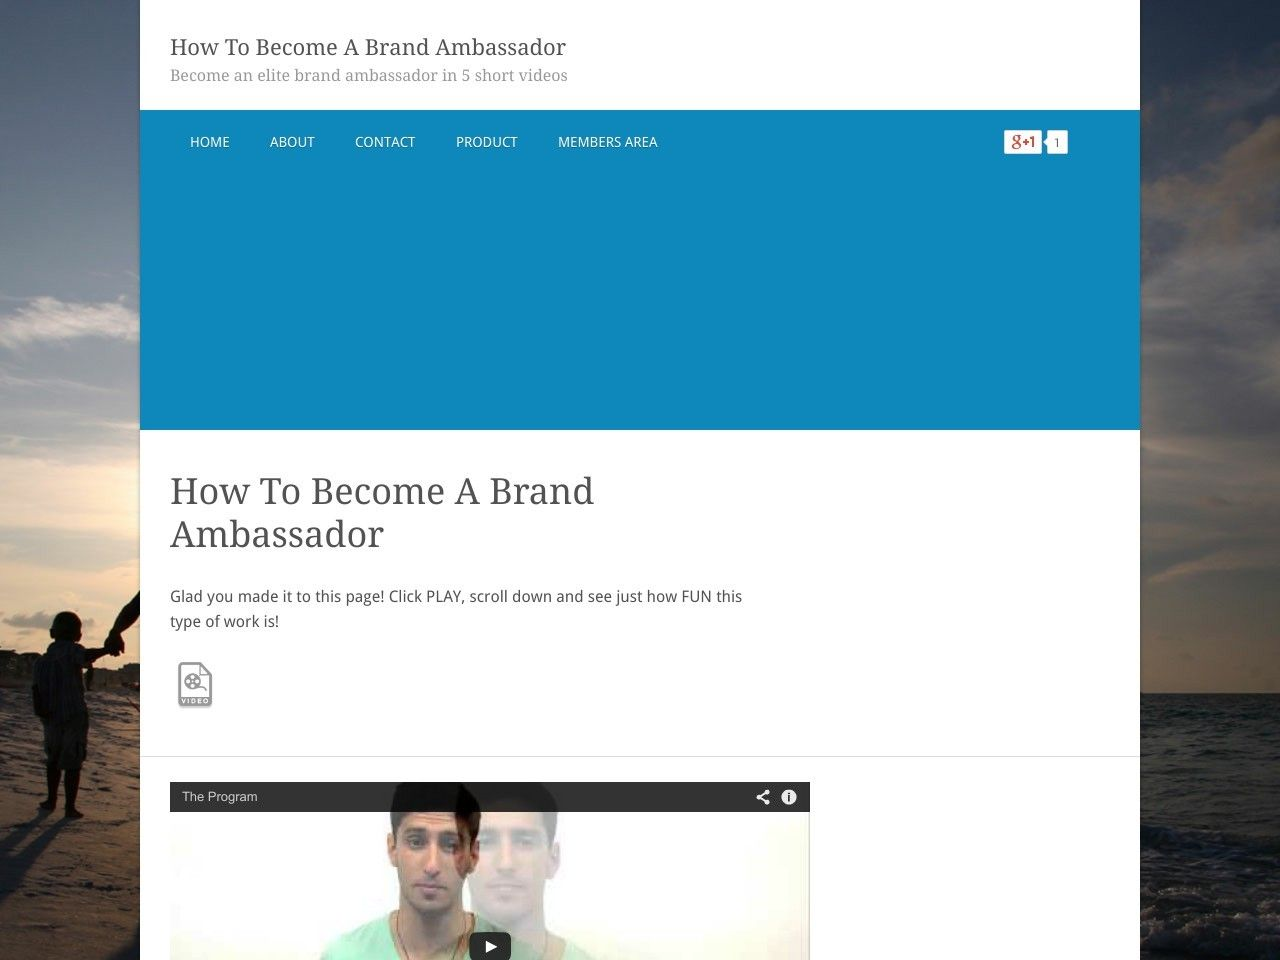 ① How To Become A Brand Ambassador - http://www.vnulab.be/lab-review/%e2%91%a0-how-to-become-a-brand-ambassador